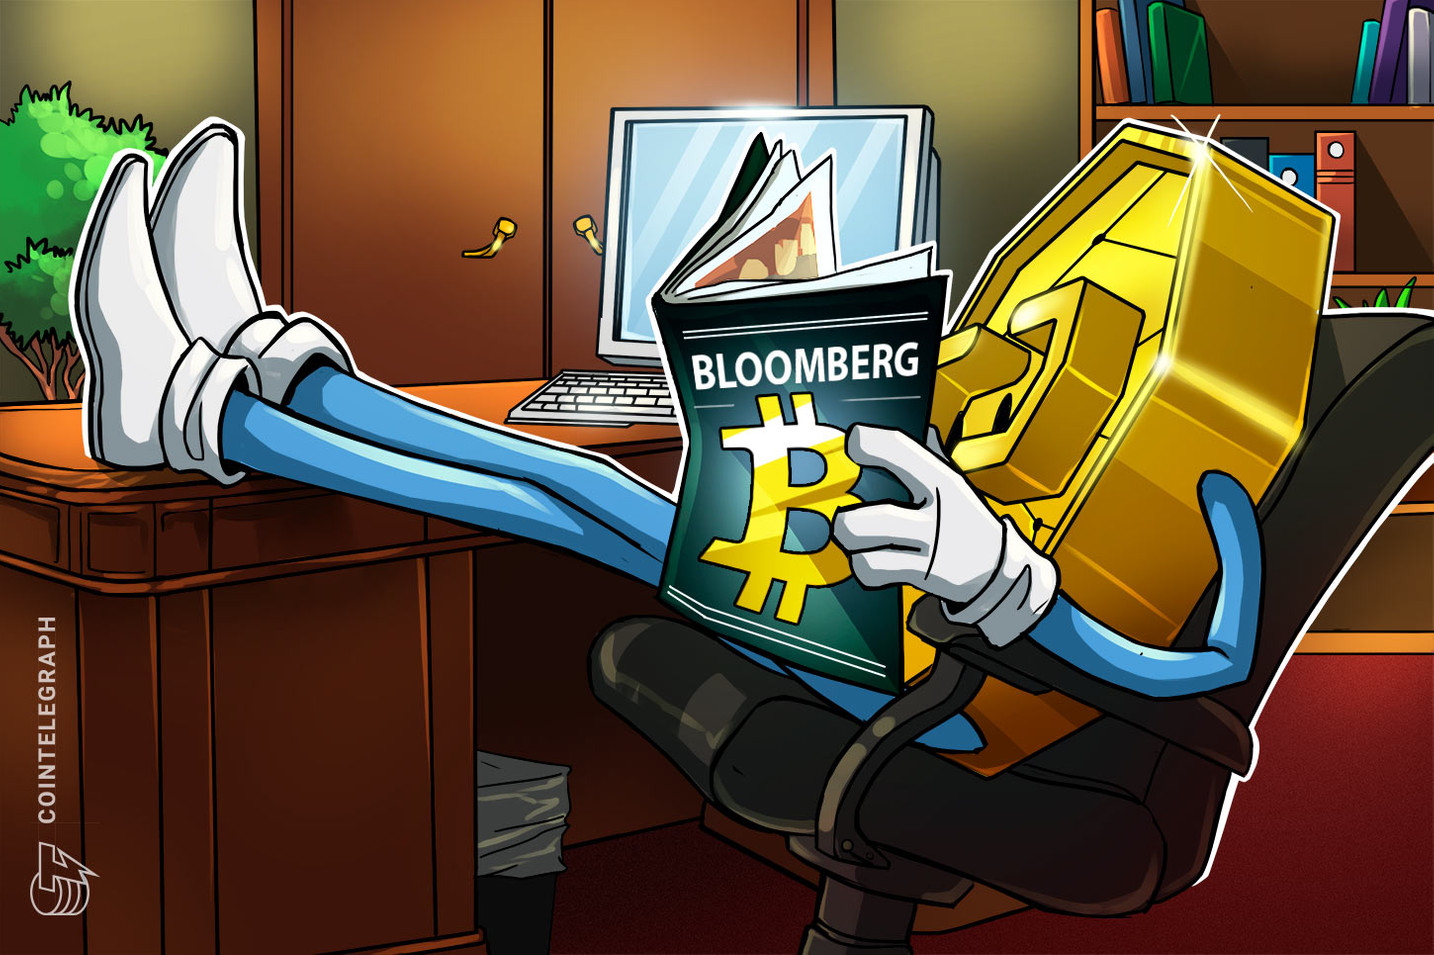 Bloomberg rialzista su Bitcoin nonostante il 'Thanksgiving Crash'